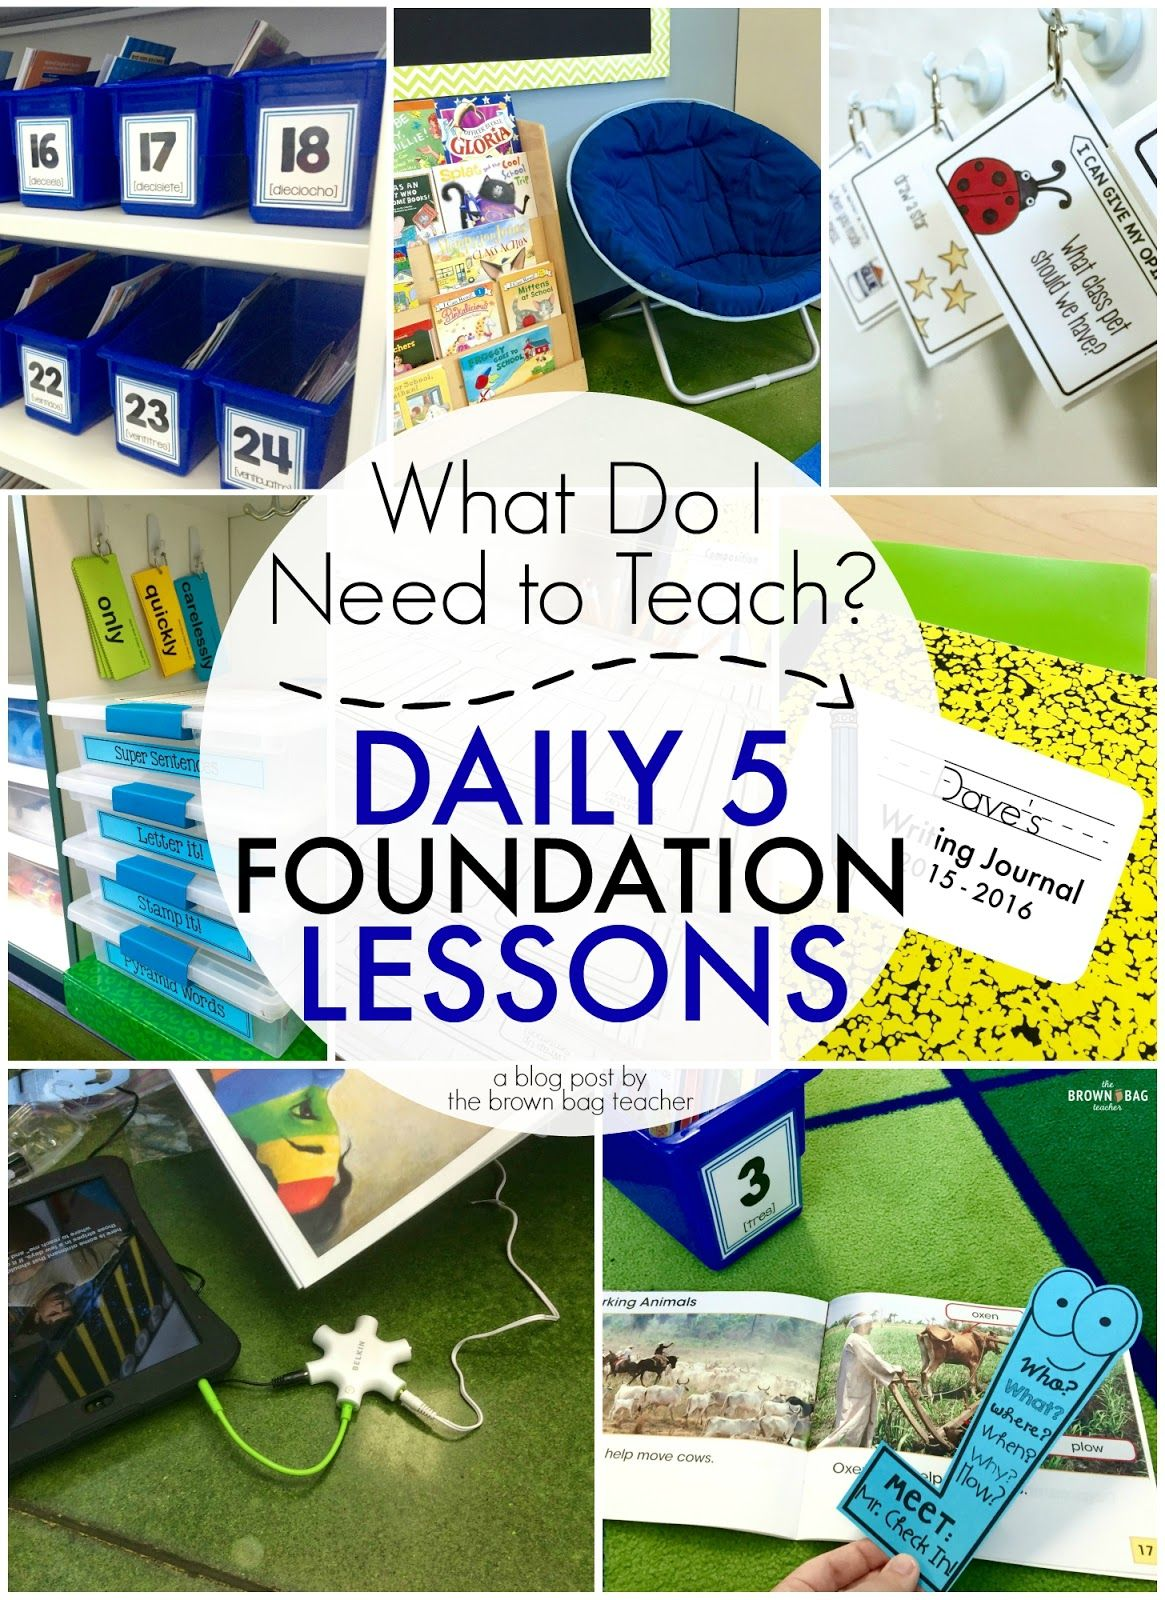 Daily 5 Foundation Lessons Chapter 6